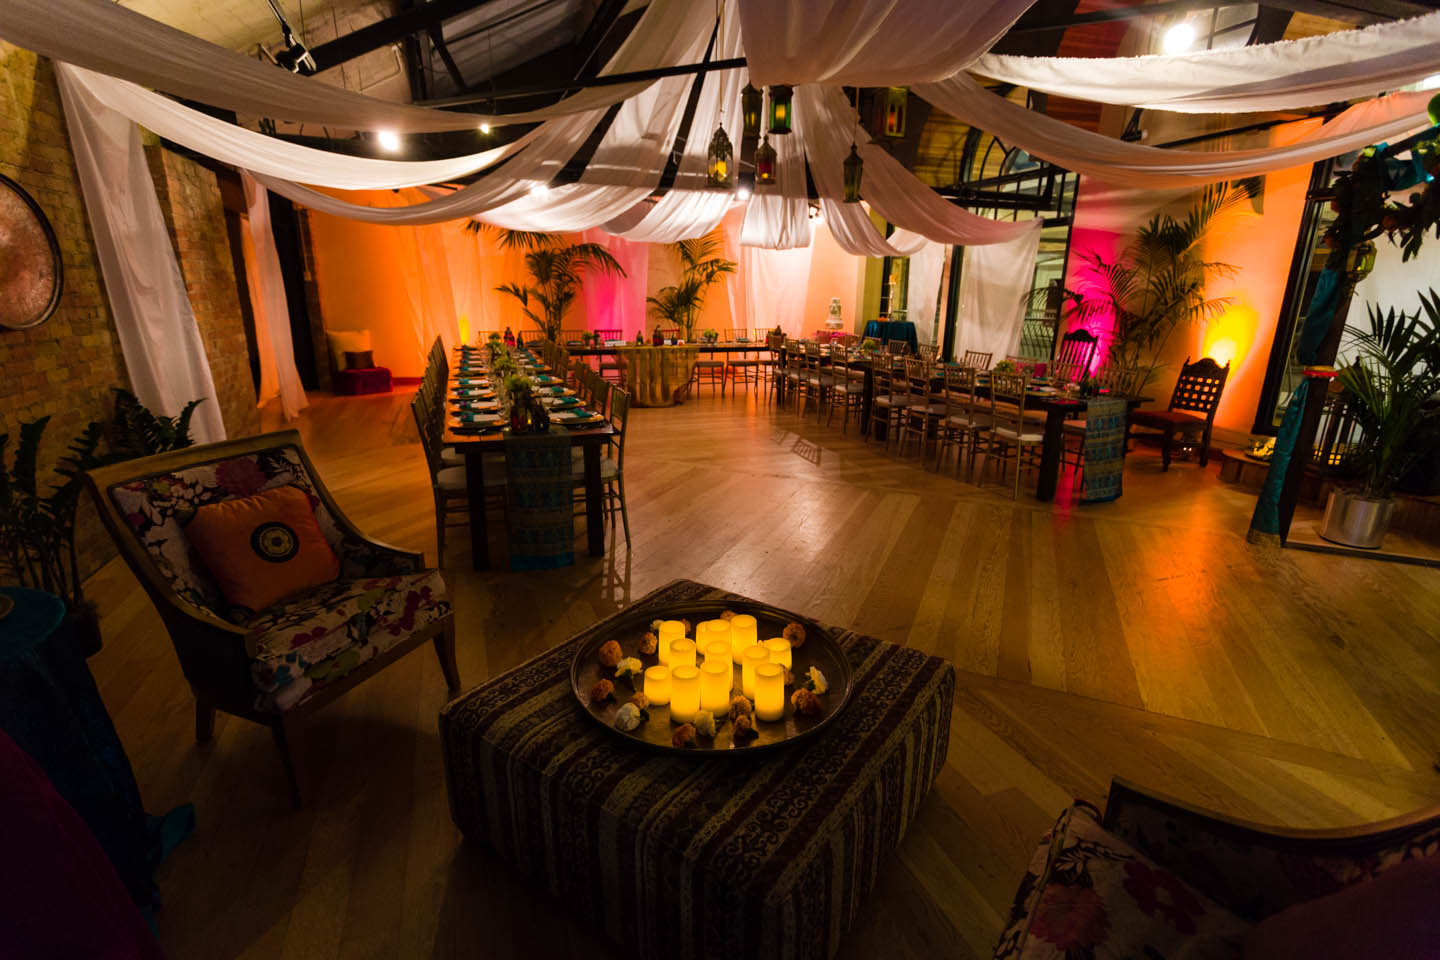 Decorated to the Indian style wedding theme